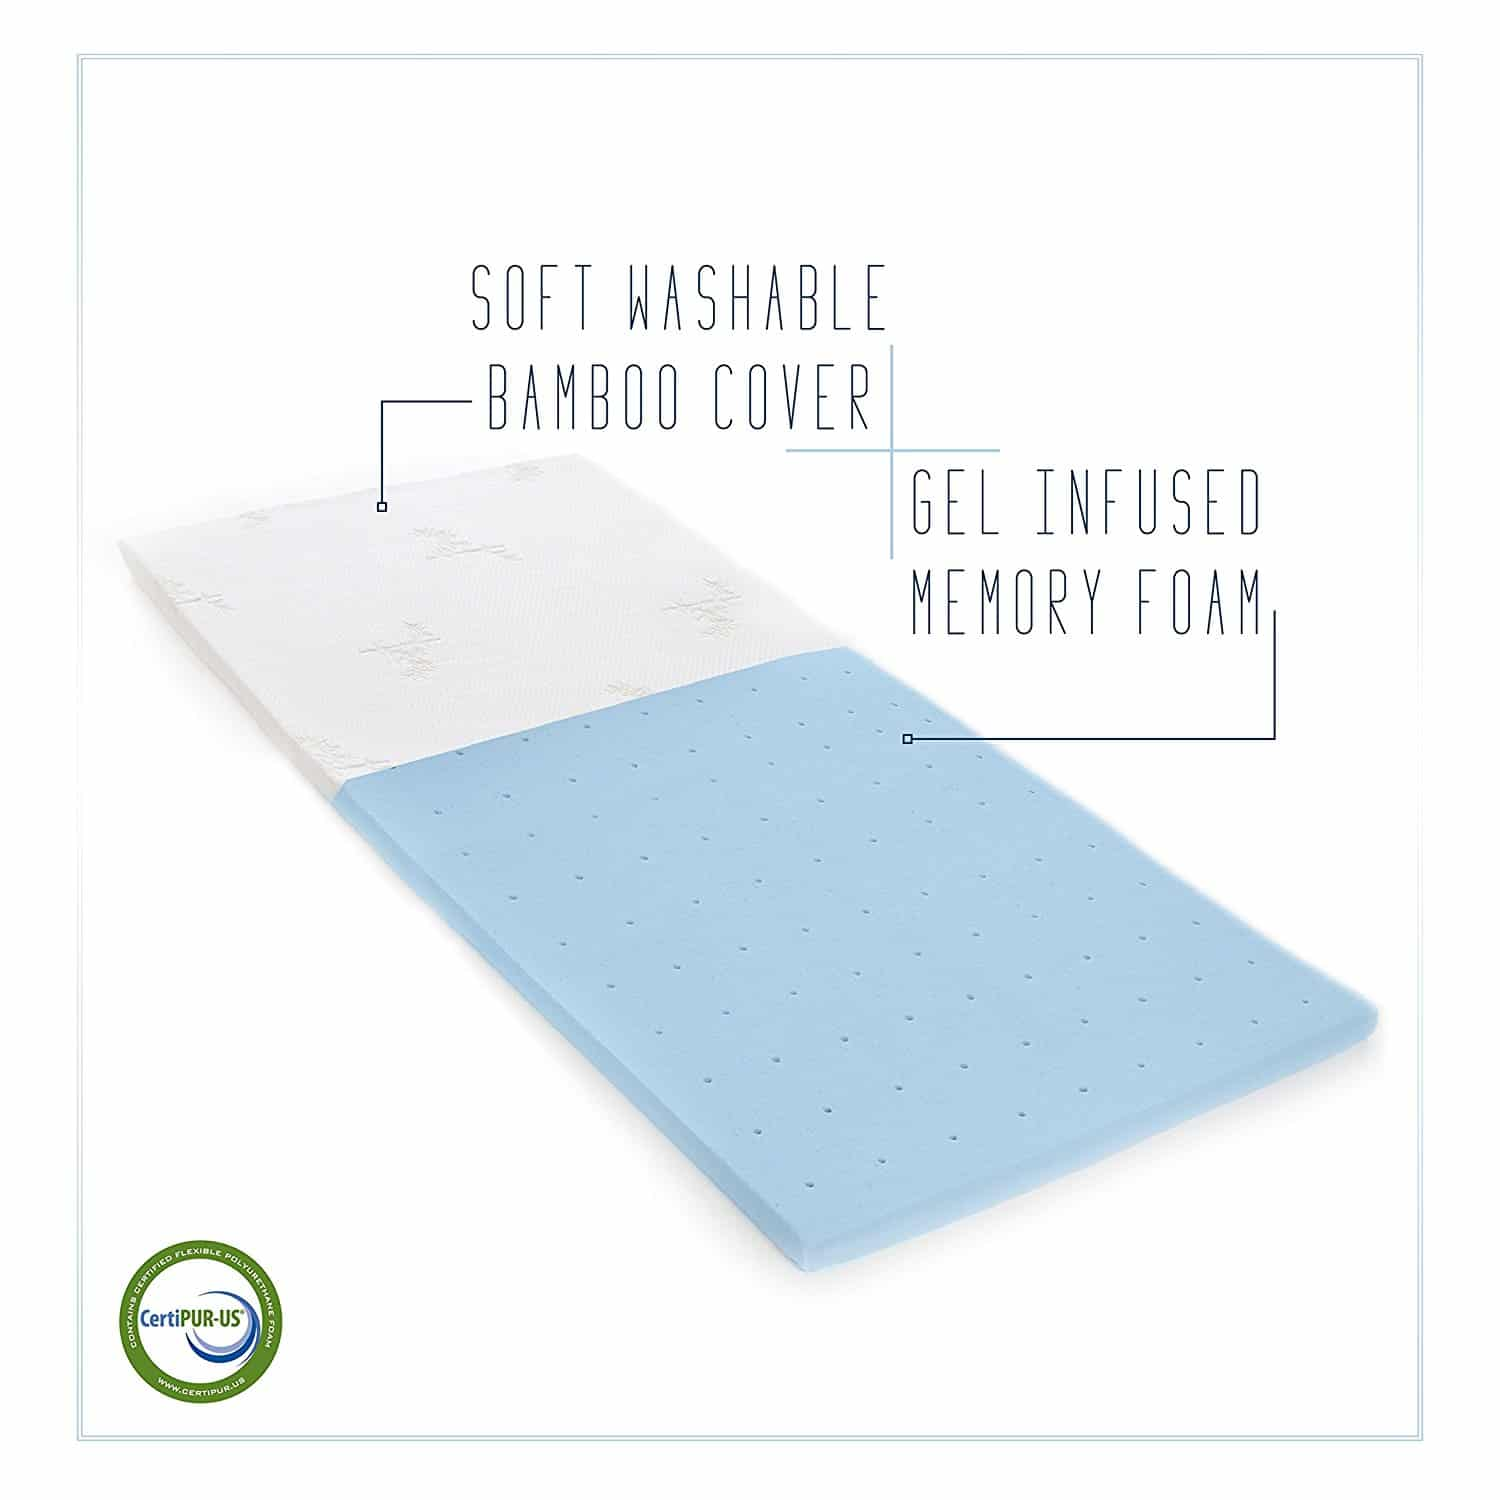 memory foam mattress topper - MILLIARD 2inch Gel Infused Memory Foam Mattress Topper